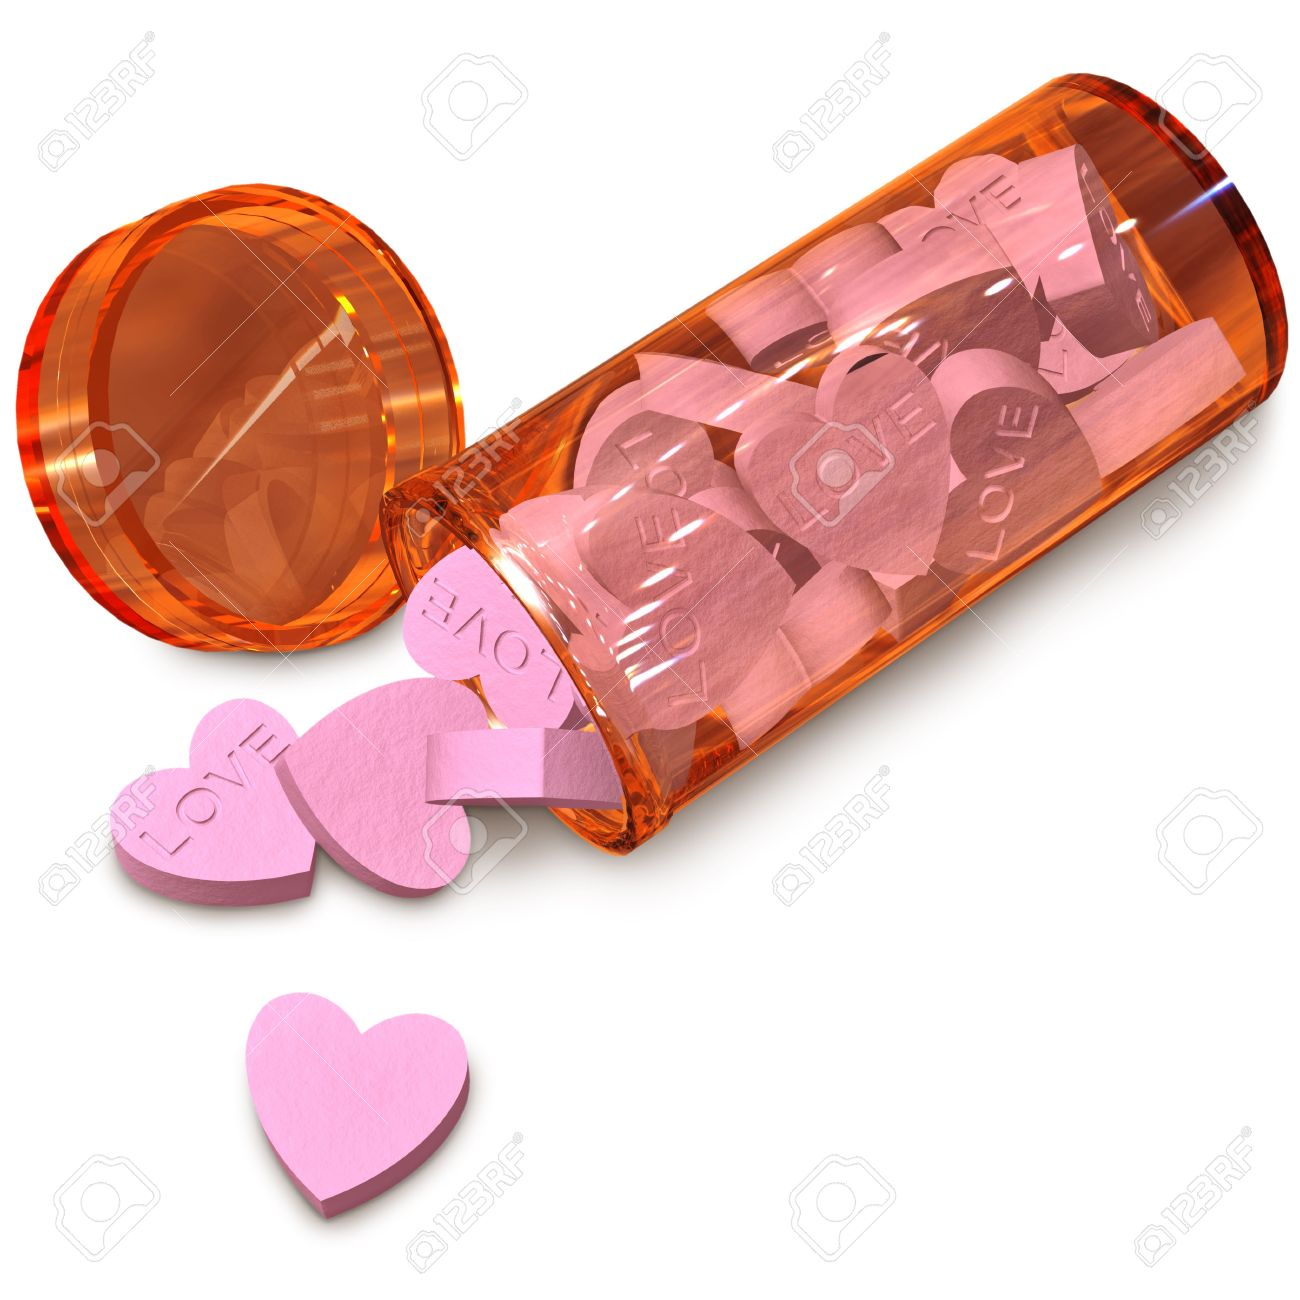 orange  tube with love pills for anti-impotence Stock Photo - 6348412